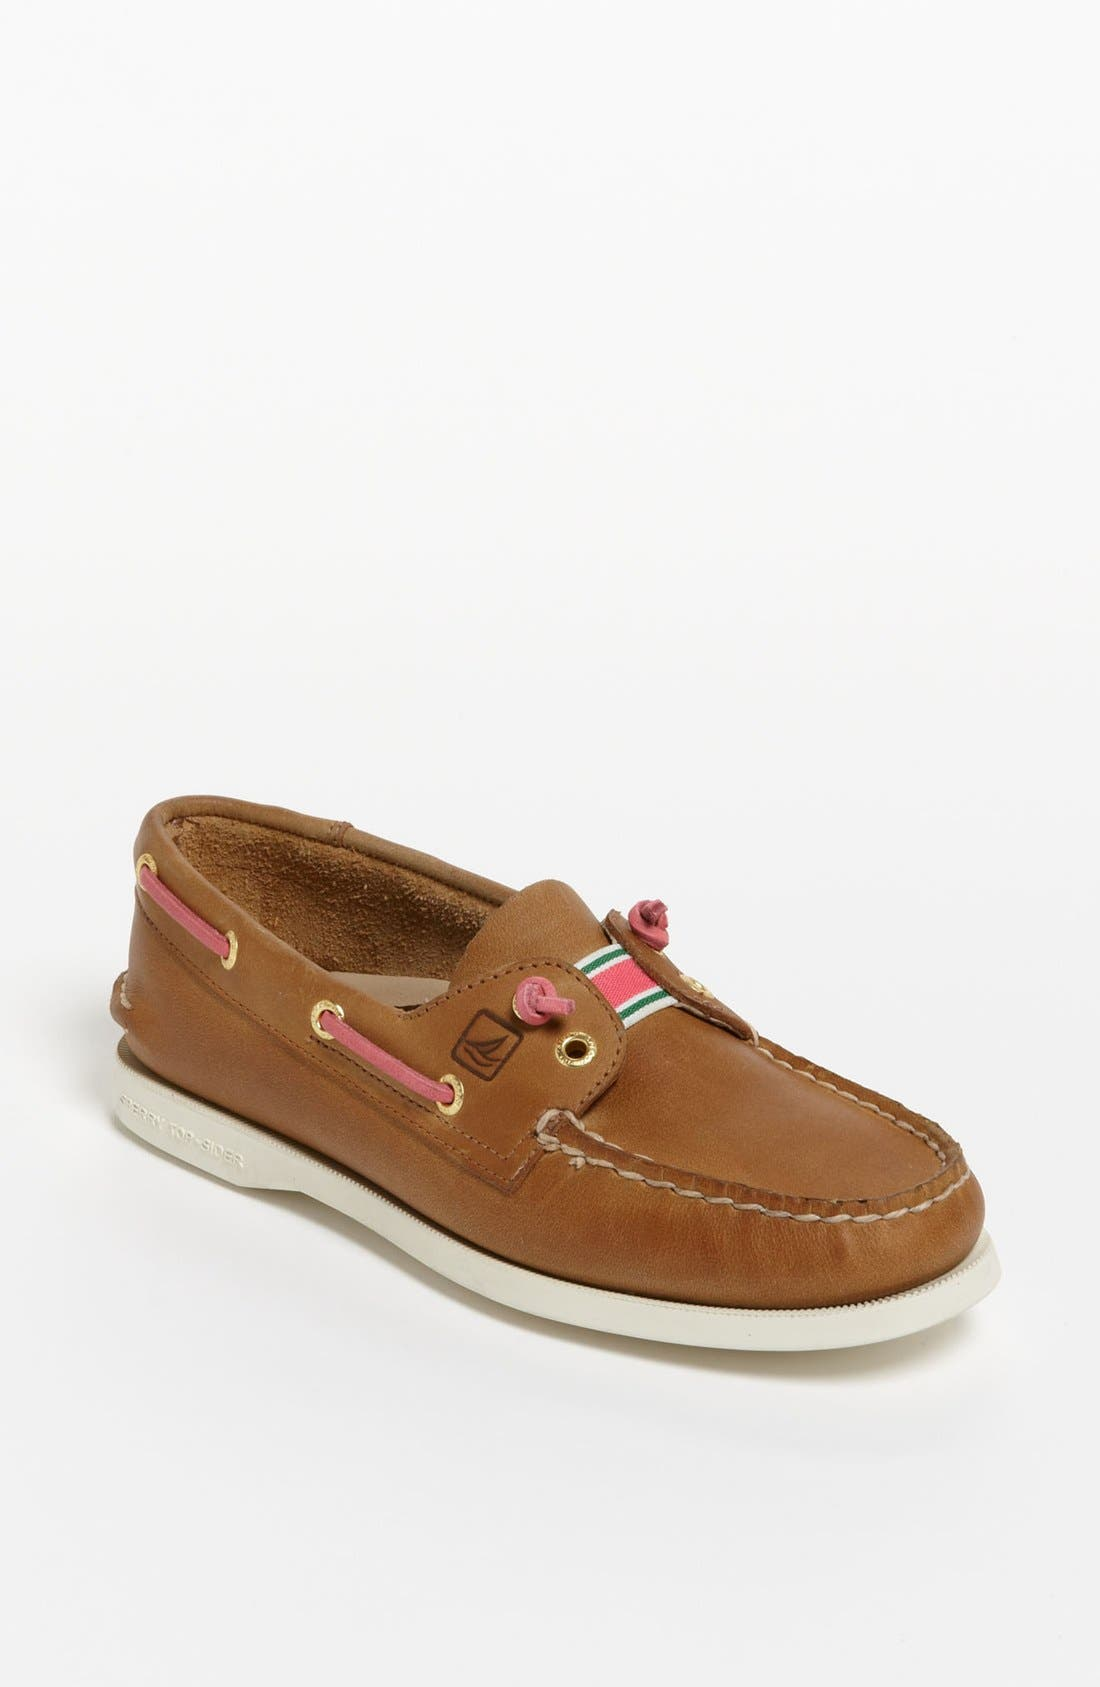 Main Image - Sperry Top-Sider® 'Lexington' Boat Shoe (Nordstrom Exclusive)